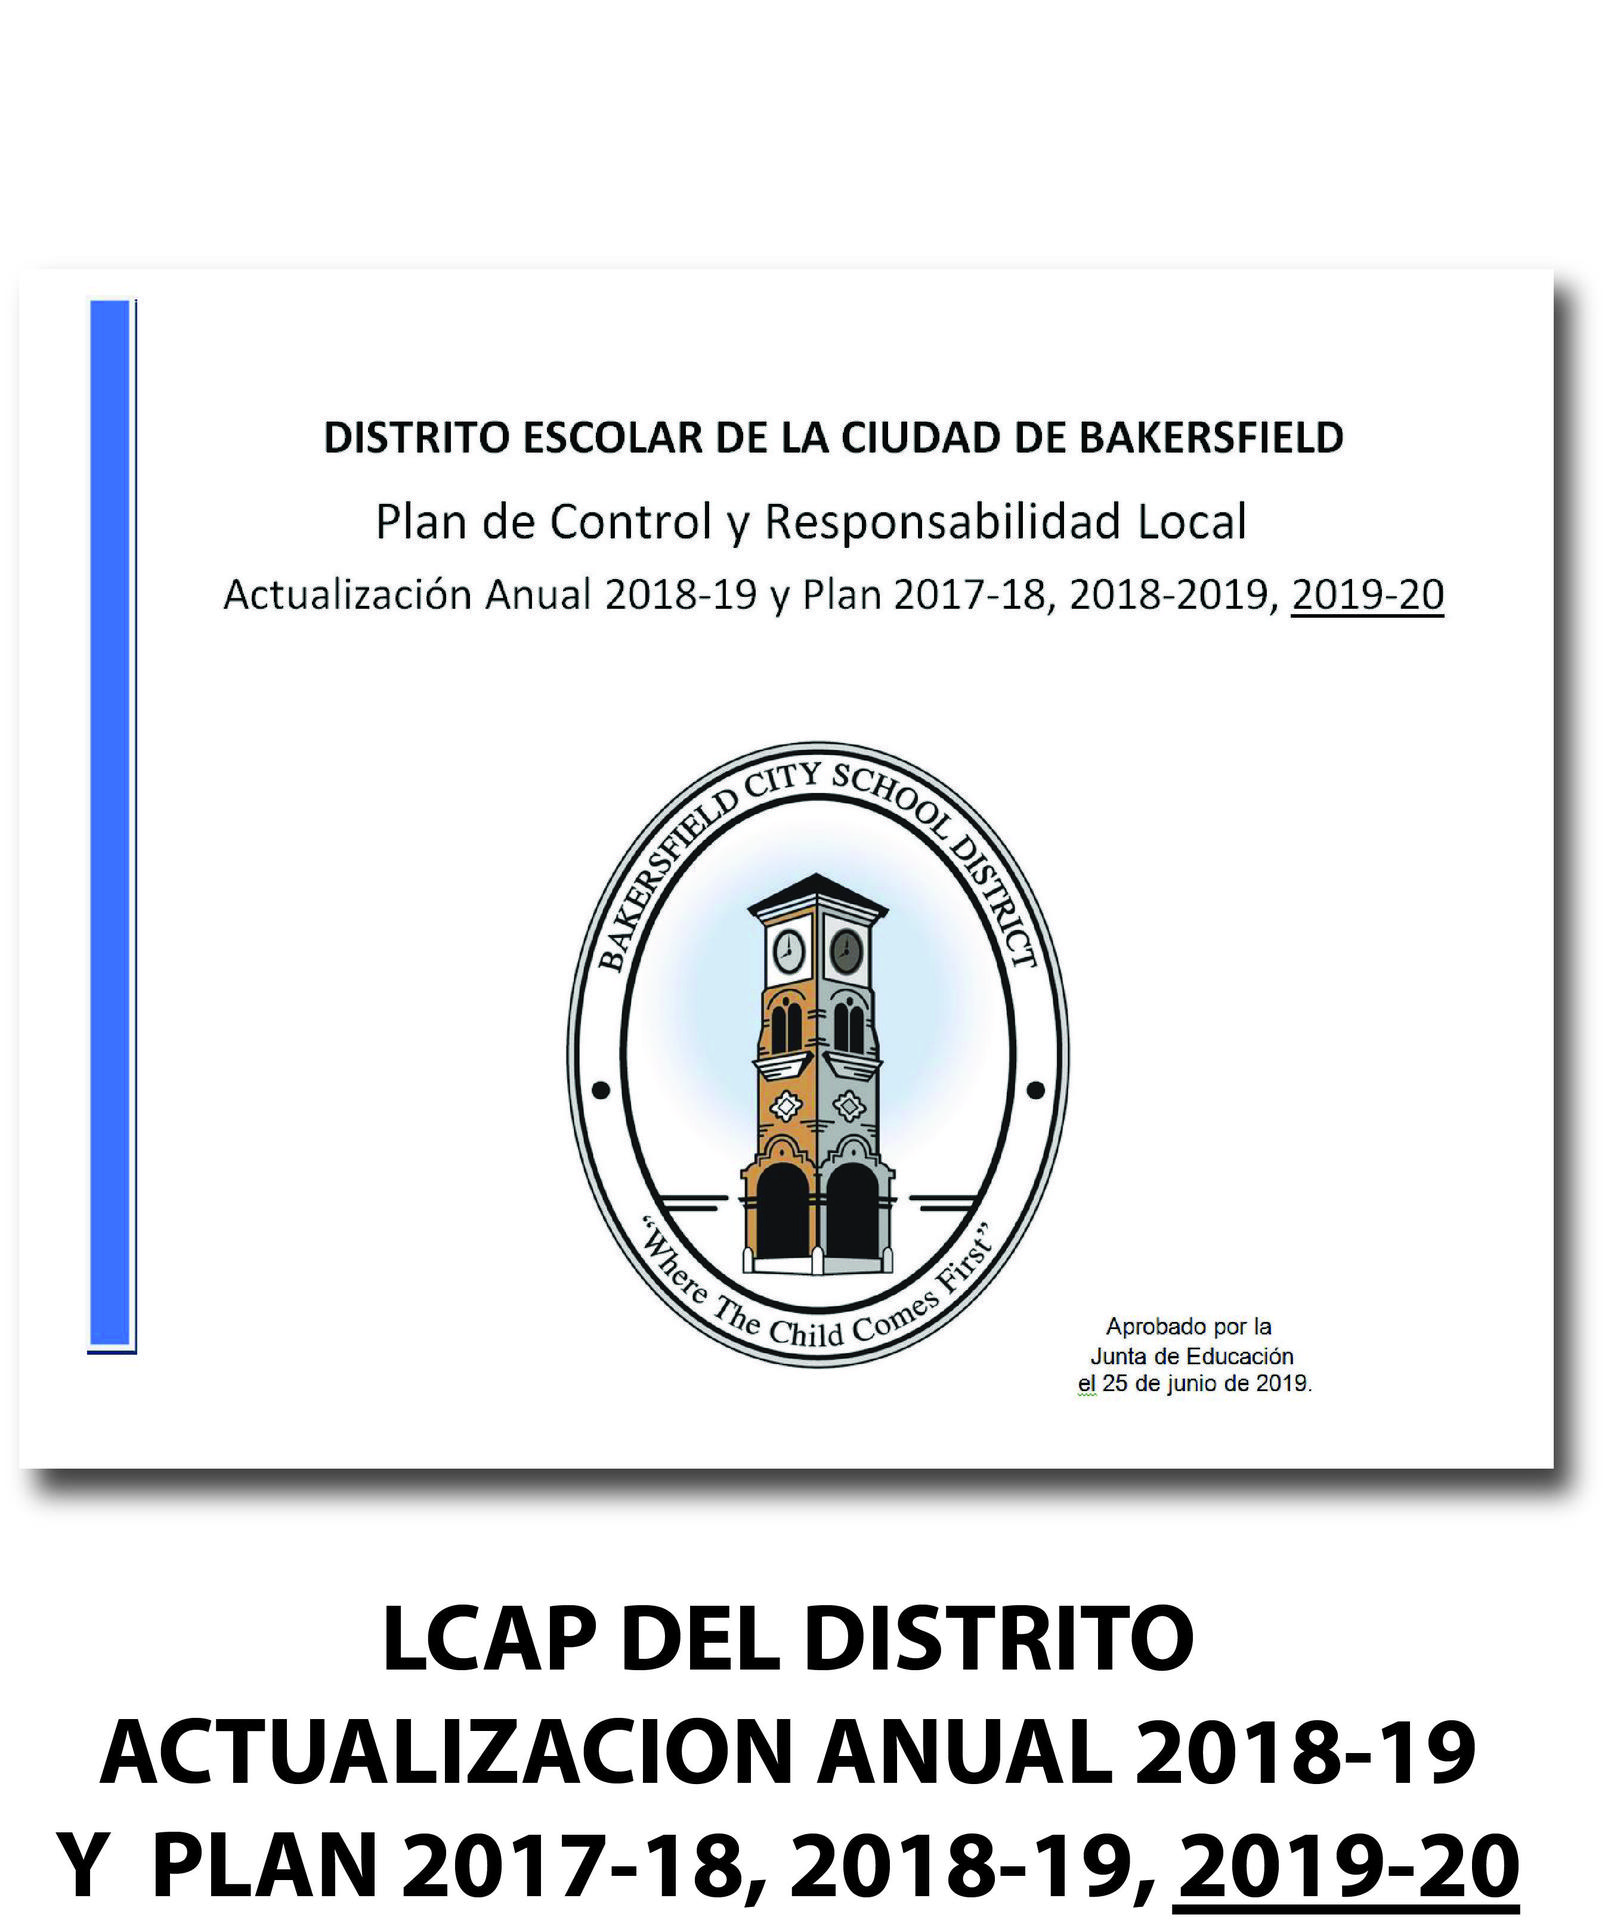 Spanish LCAP 2018-19 annual update and 2017-18, 2018-19, 2019-20 plan